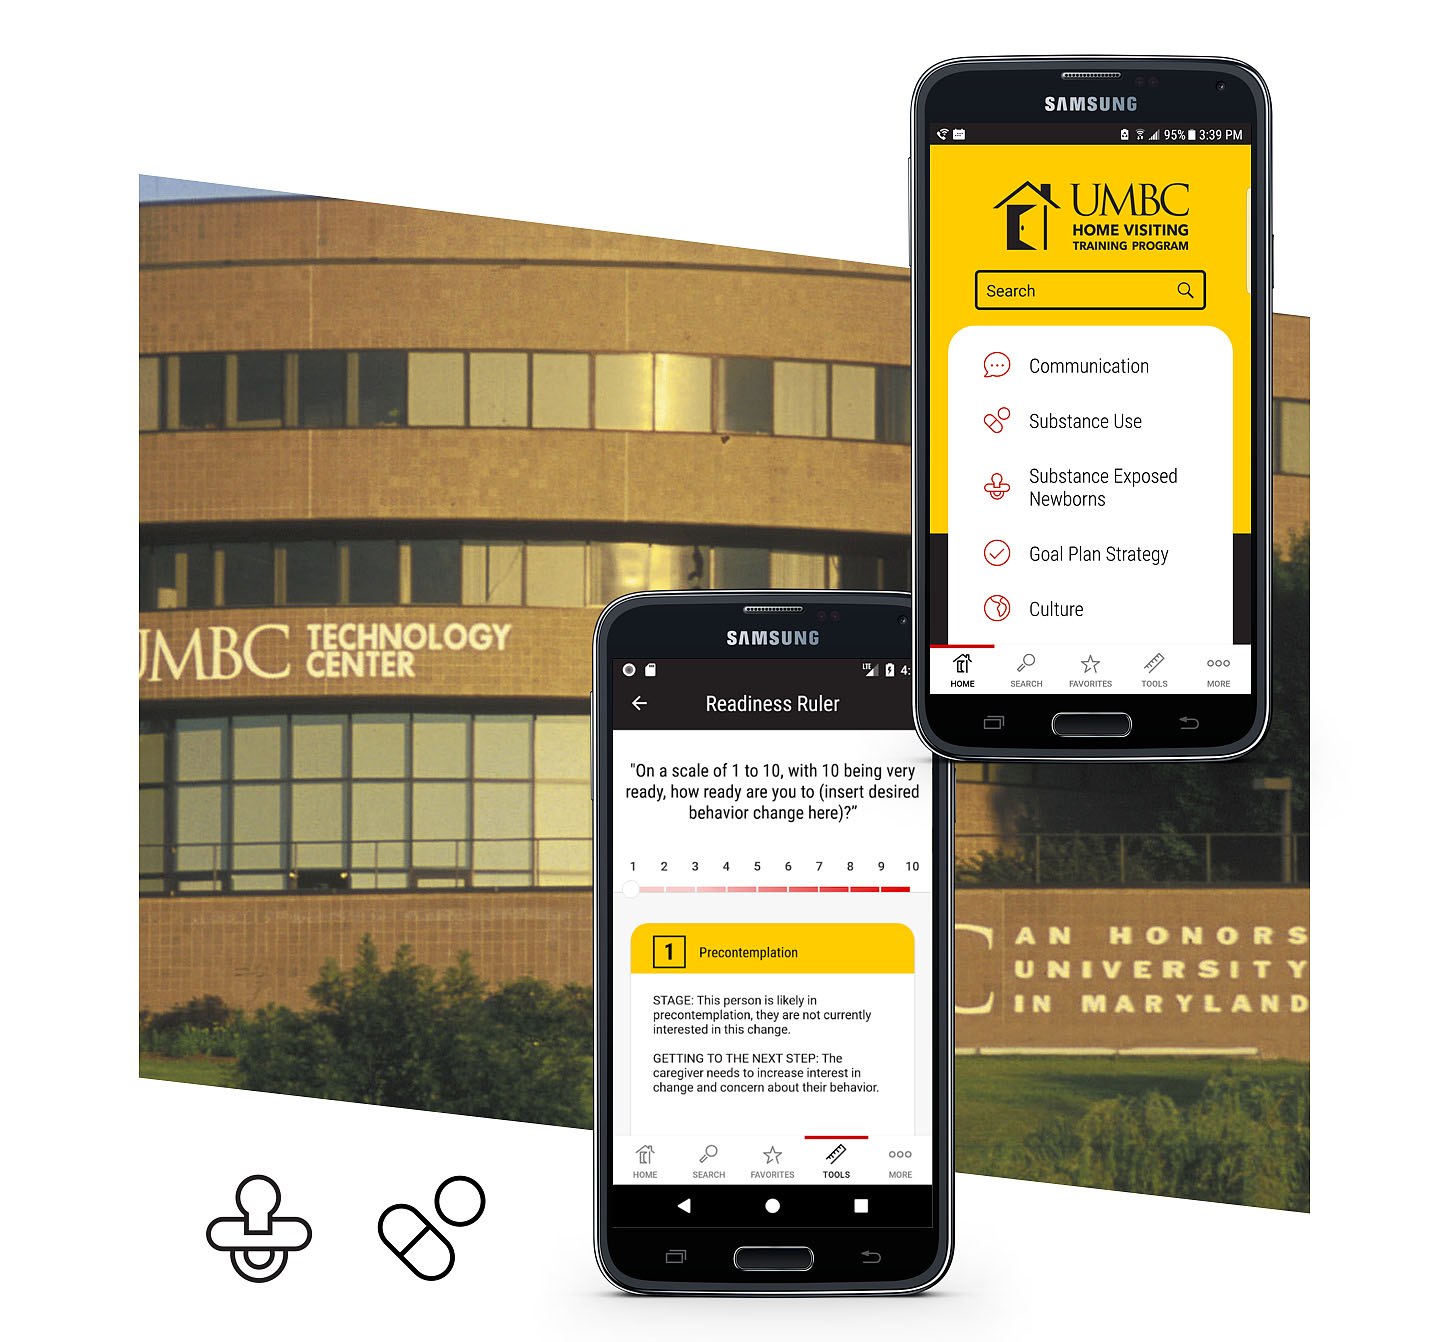 Two smartphones in the forefront displaying UMBC Home Visiting Training Program website with the UMBC building in the background.